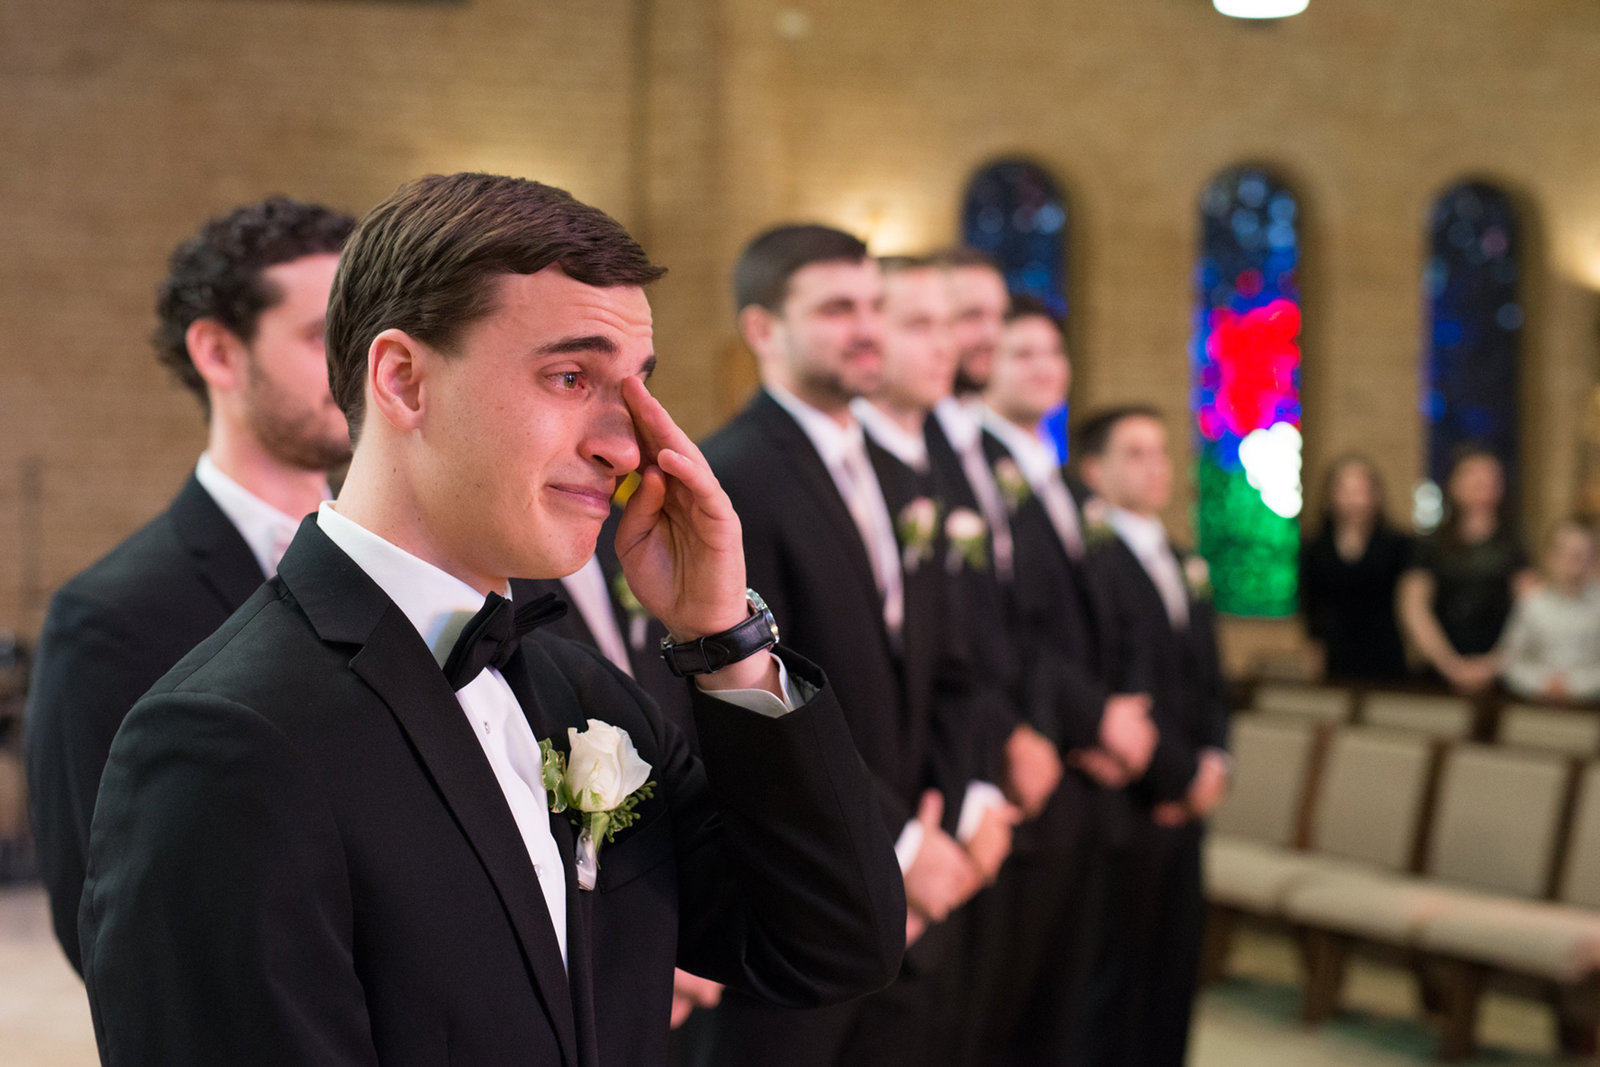 Groom tears up as he sees bride for the first time on their wedding day in Temple, Texas